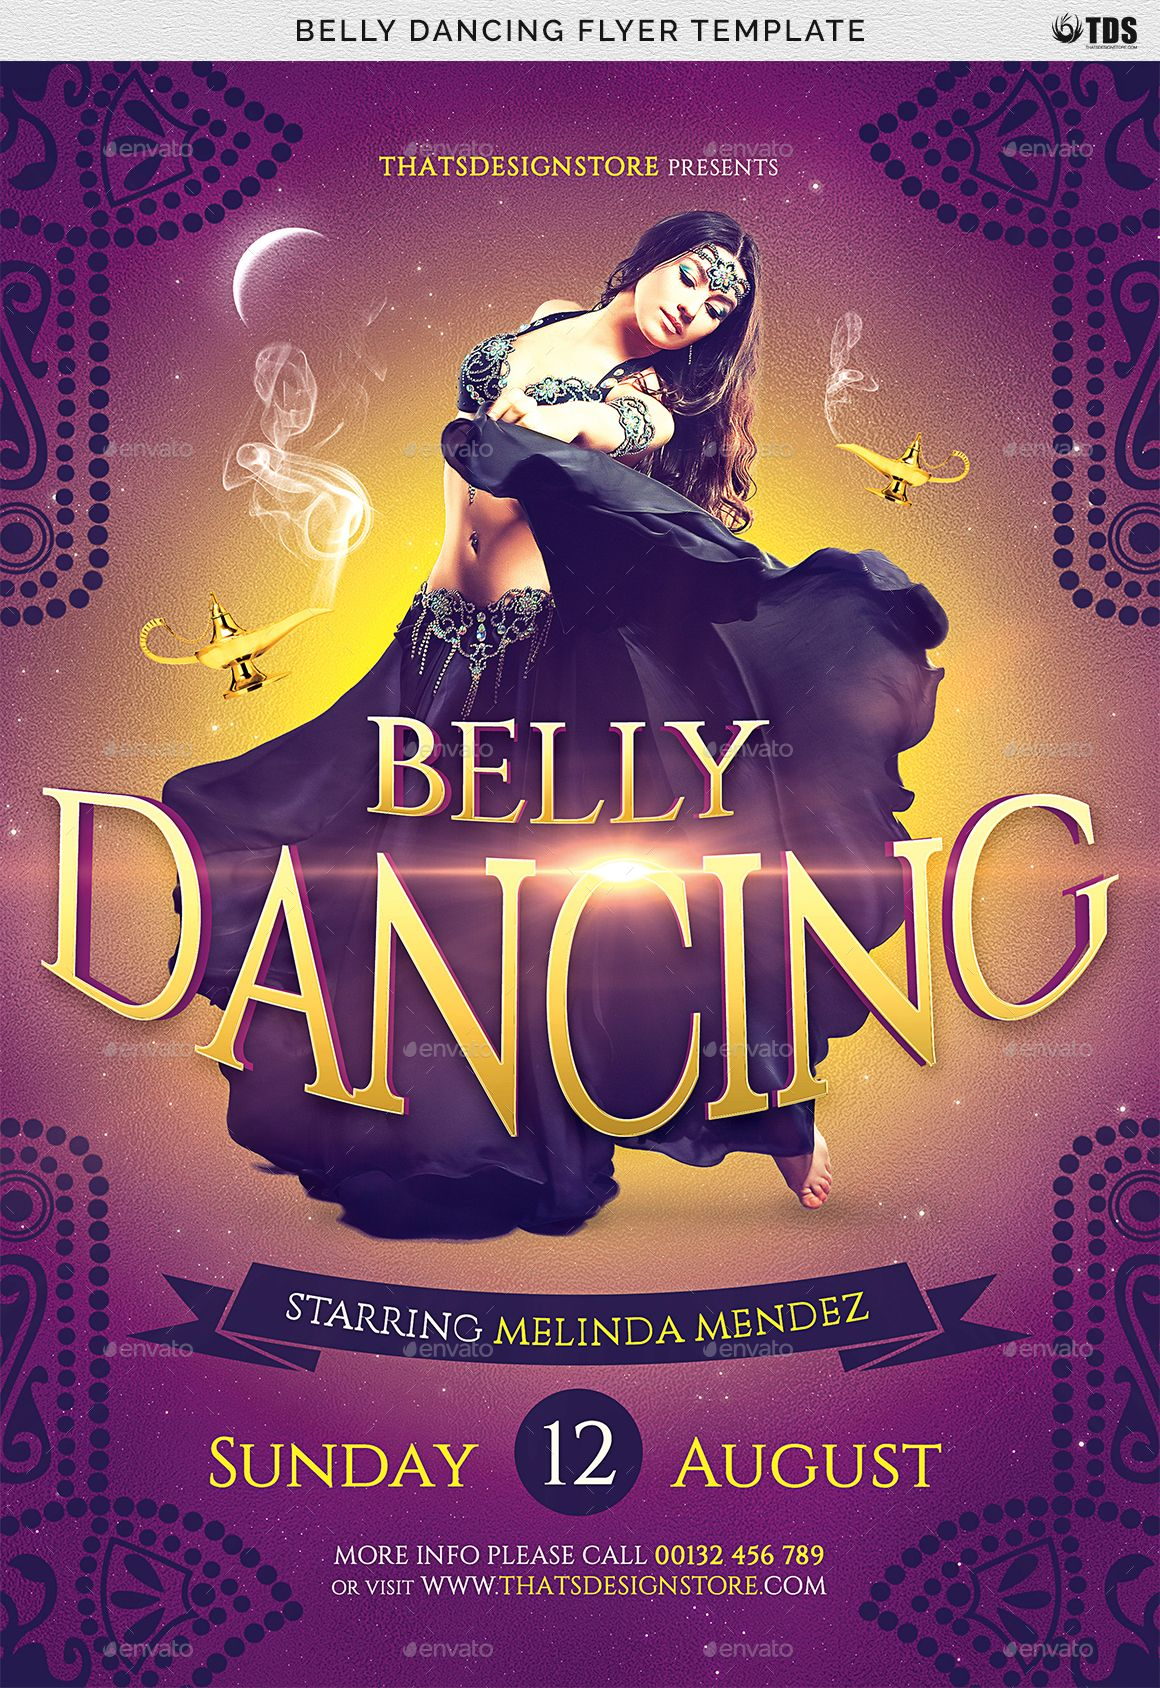 Belly Dancing Flyer Template Flyer Template Flyer Free Psd Flyer Templates